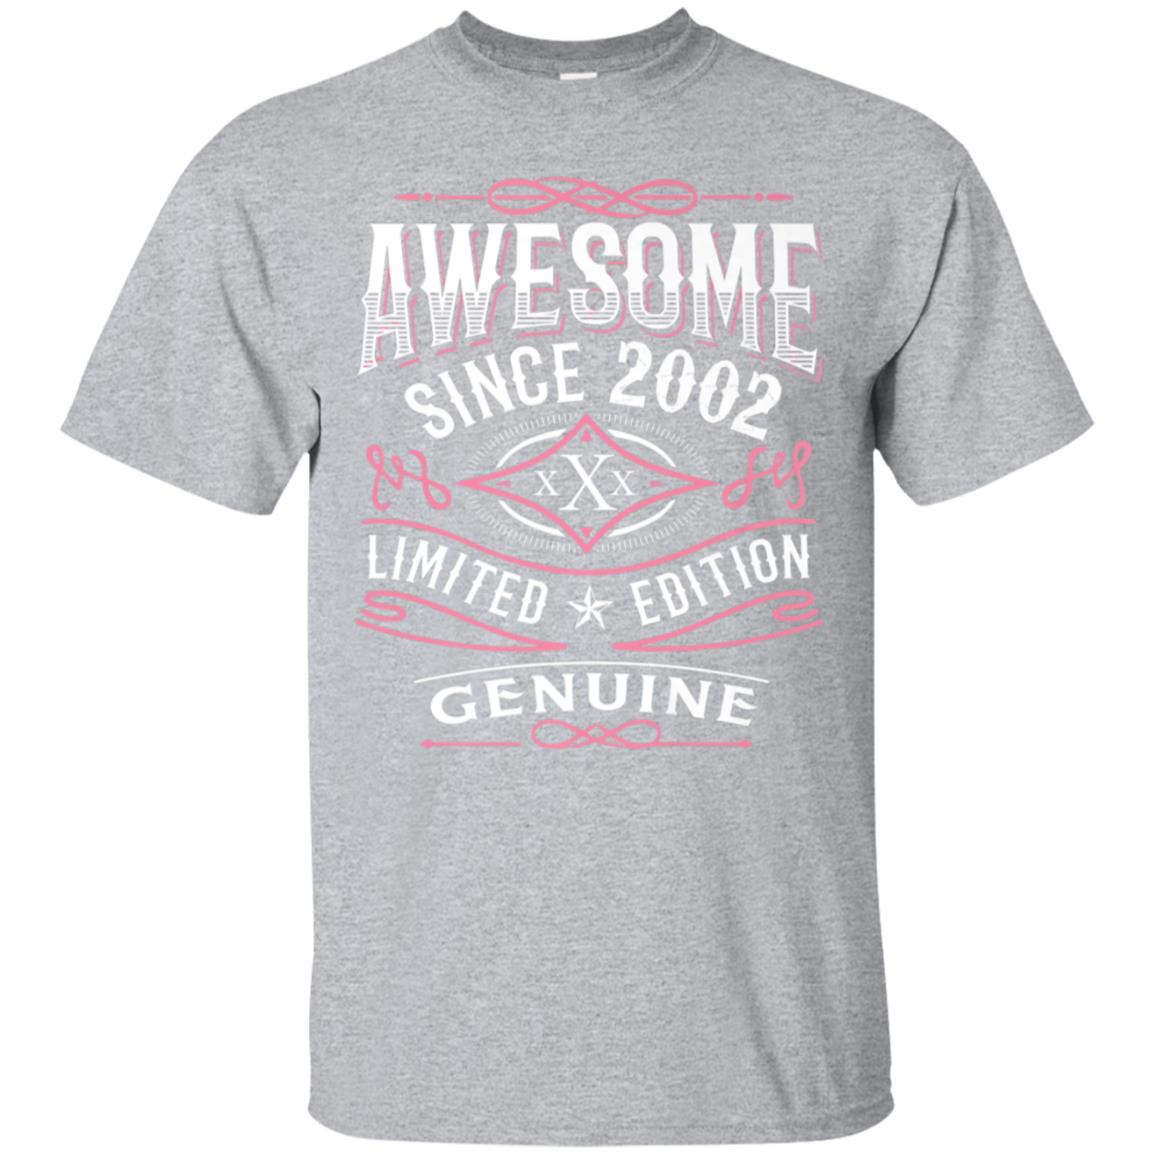 16th Birthday Gift T-Shirt Awesome Since 2002 Vintage Shirt 99promocode